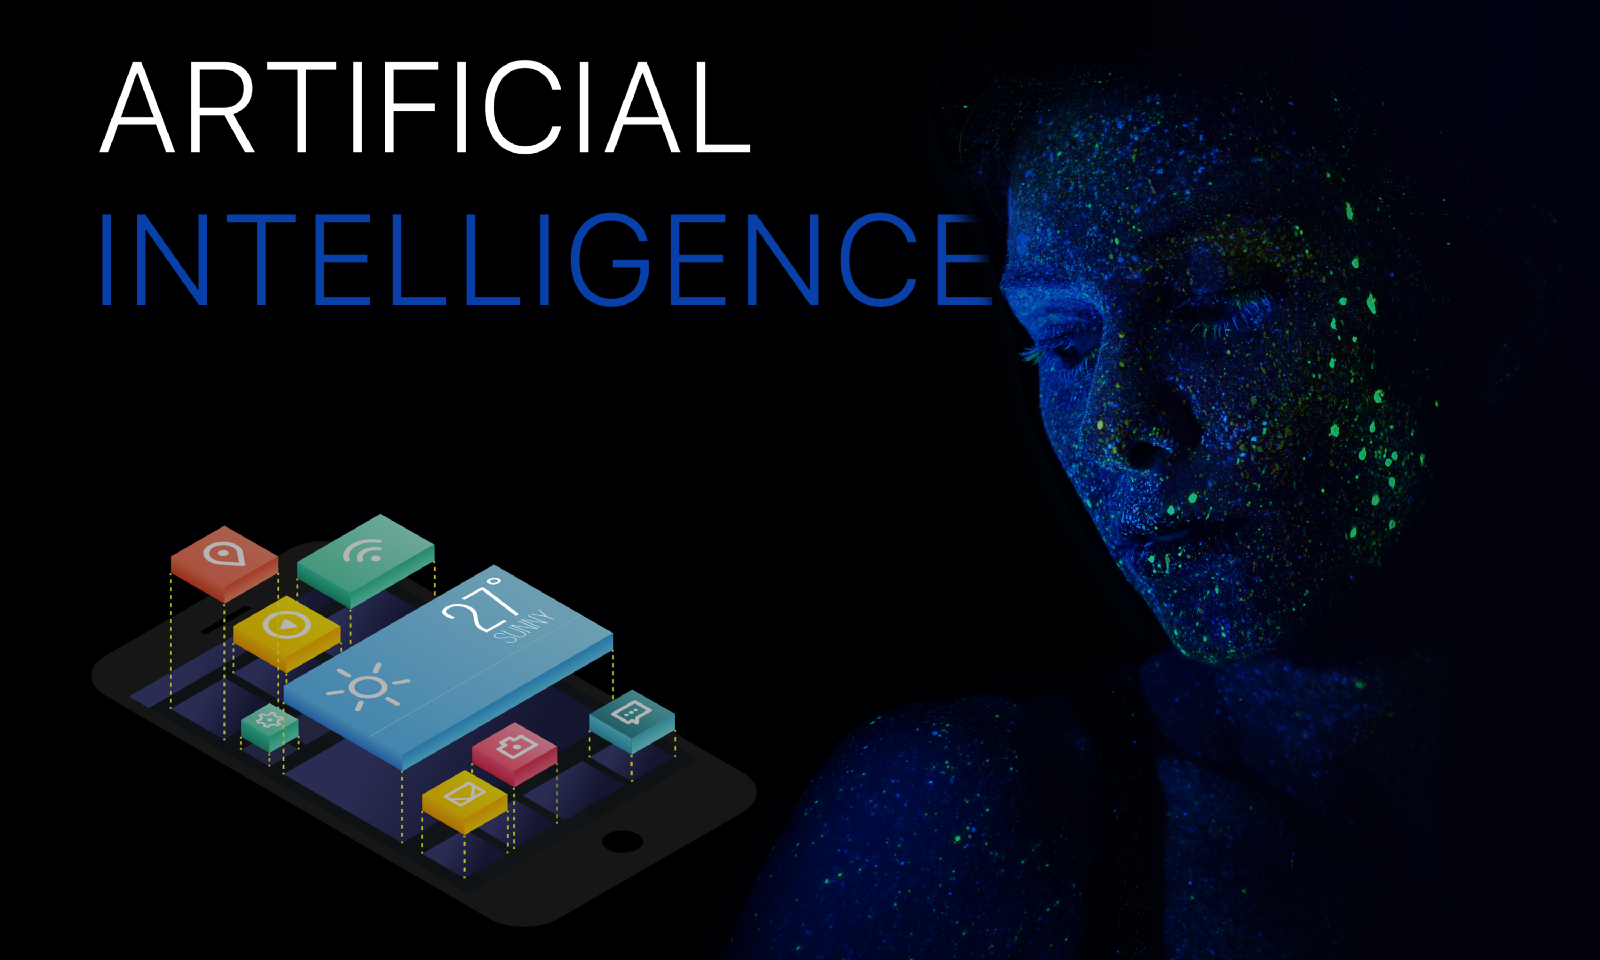 artificial intelligence in mobile applications